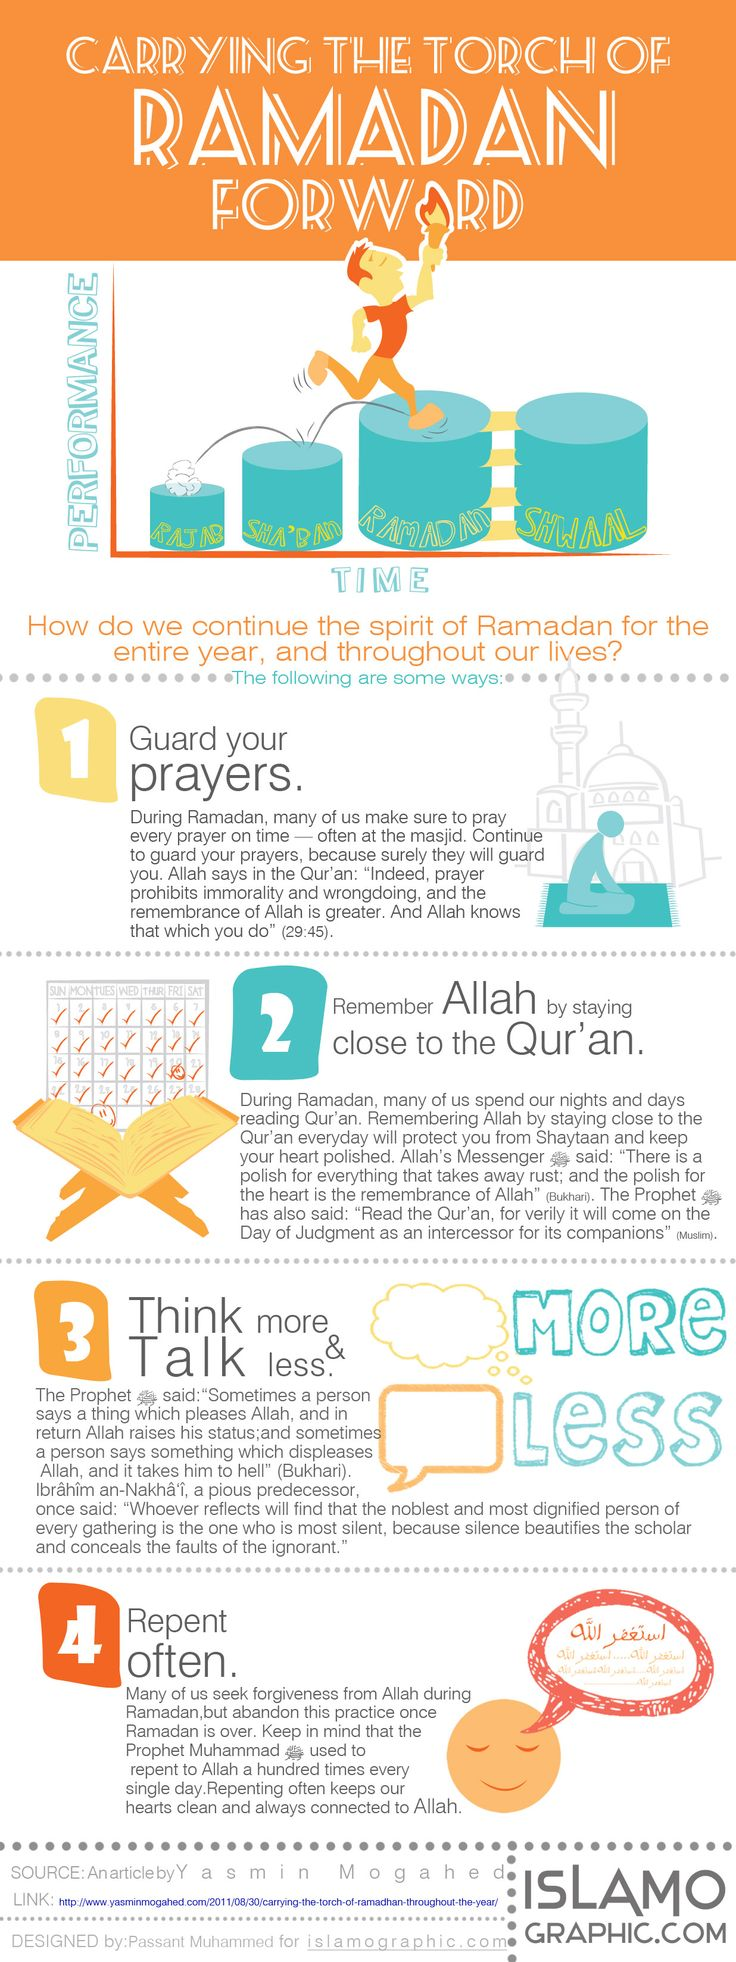 Carrying the Torch of Ramadan